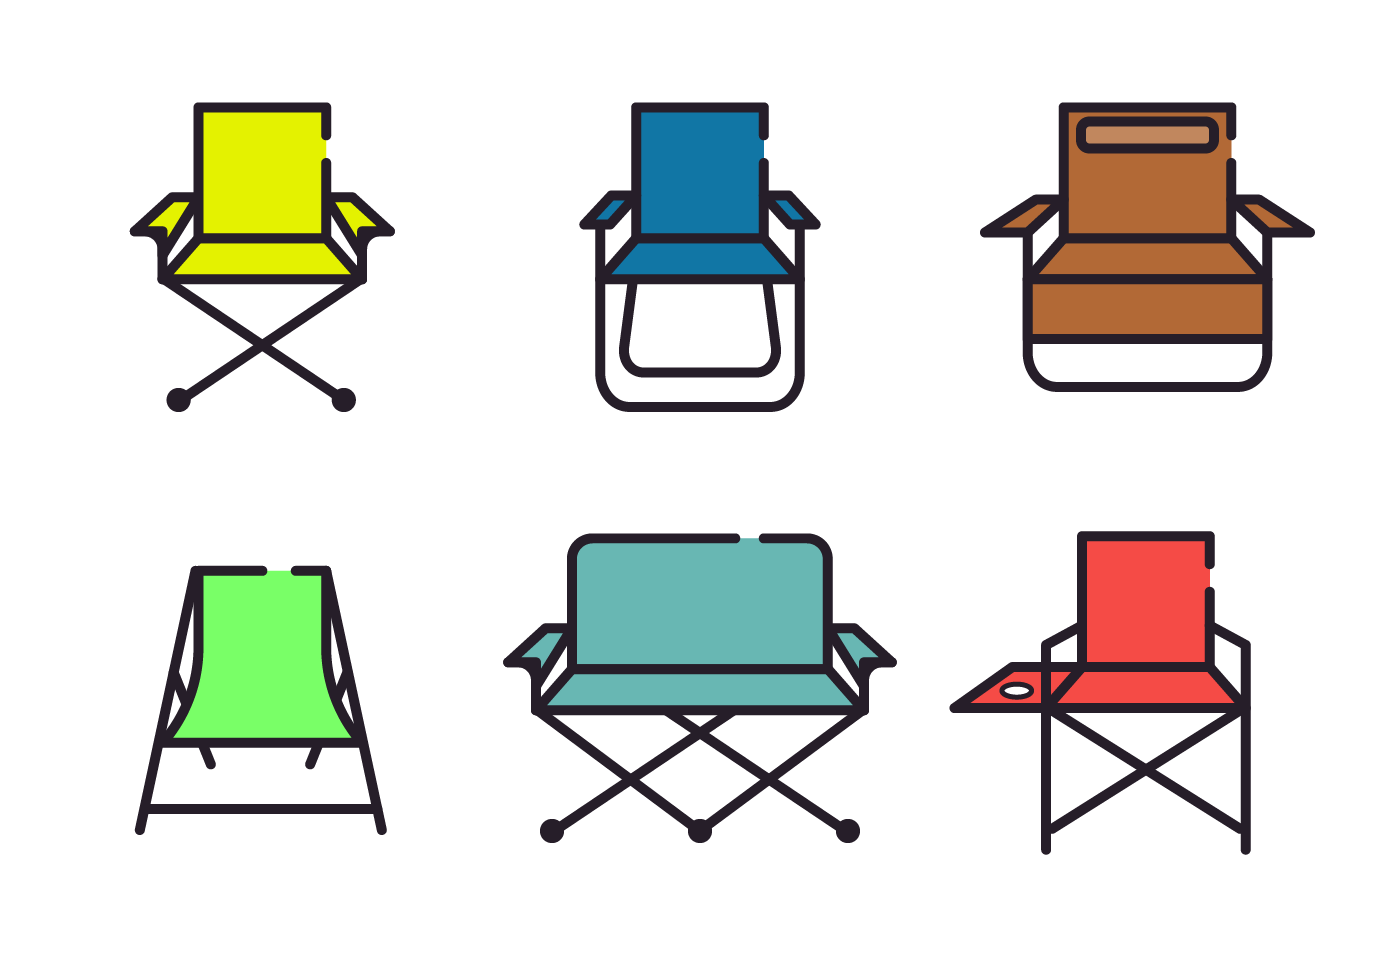 Minimalist Lawn Chair Vector - Download Free Vector Art ...